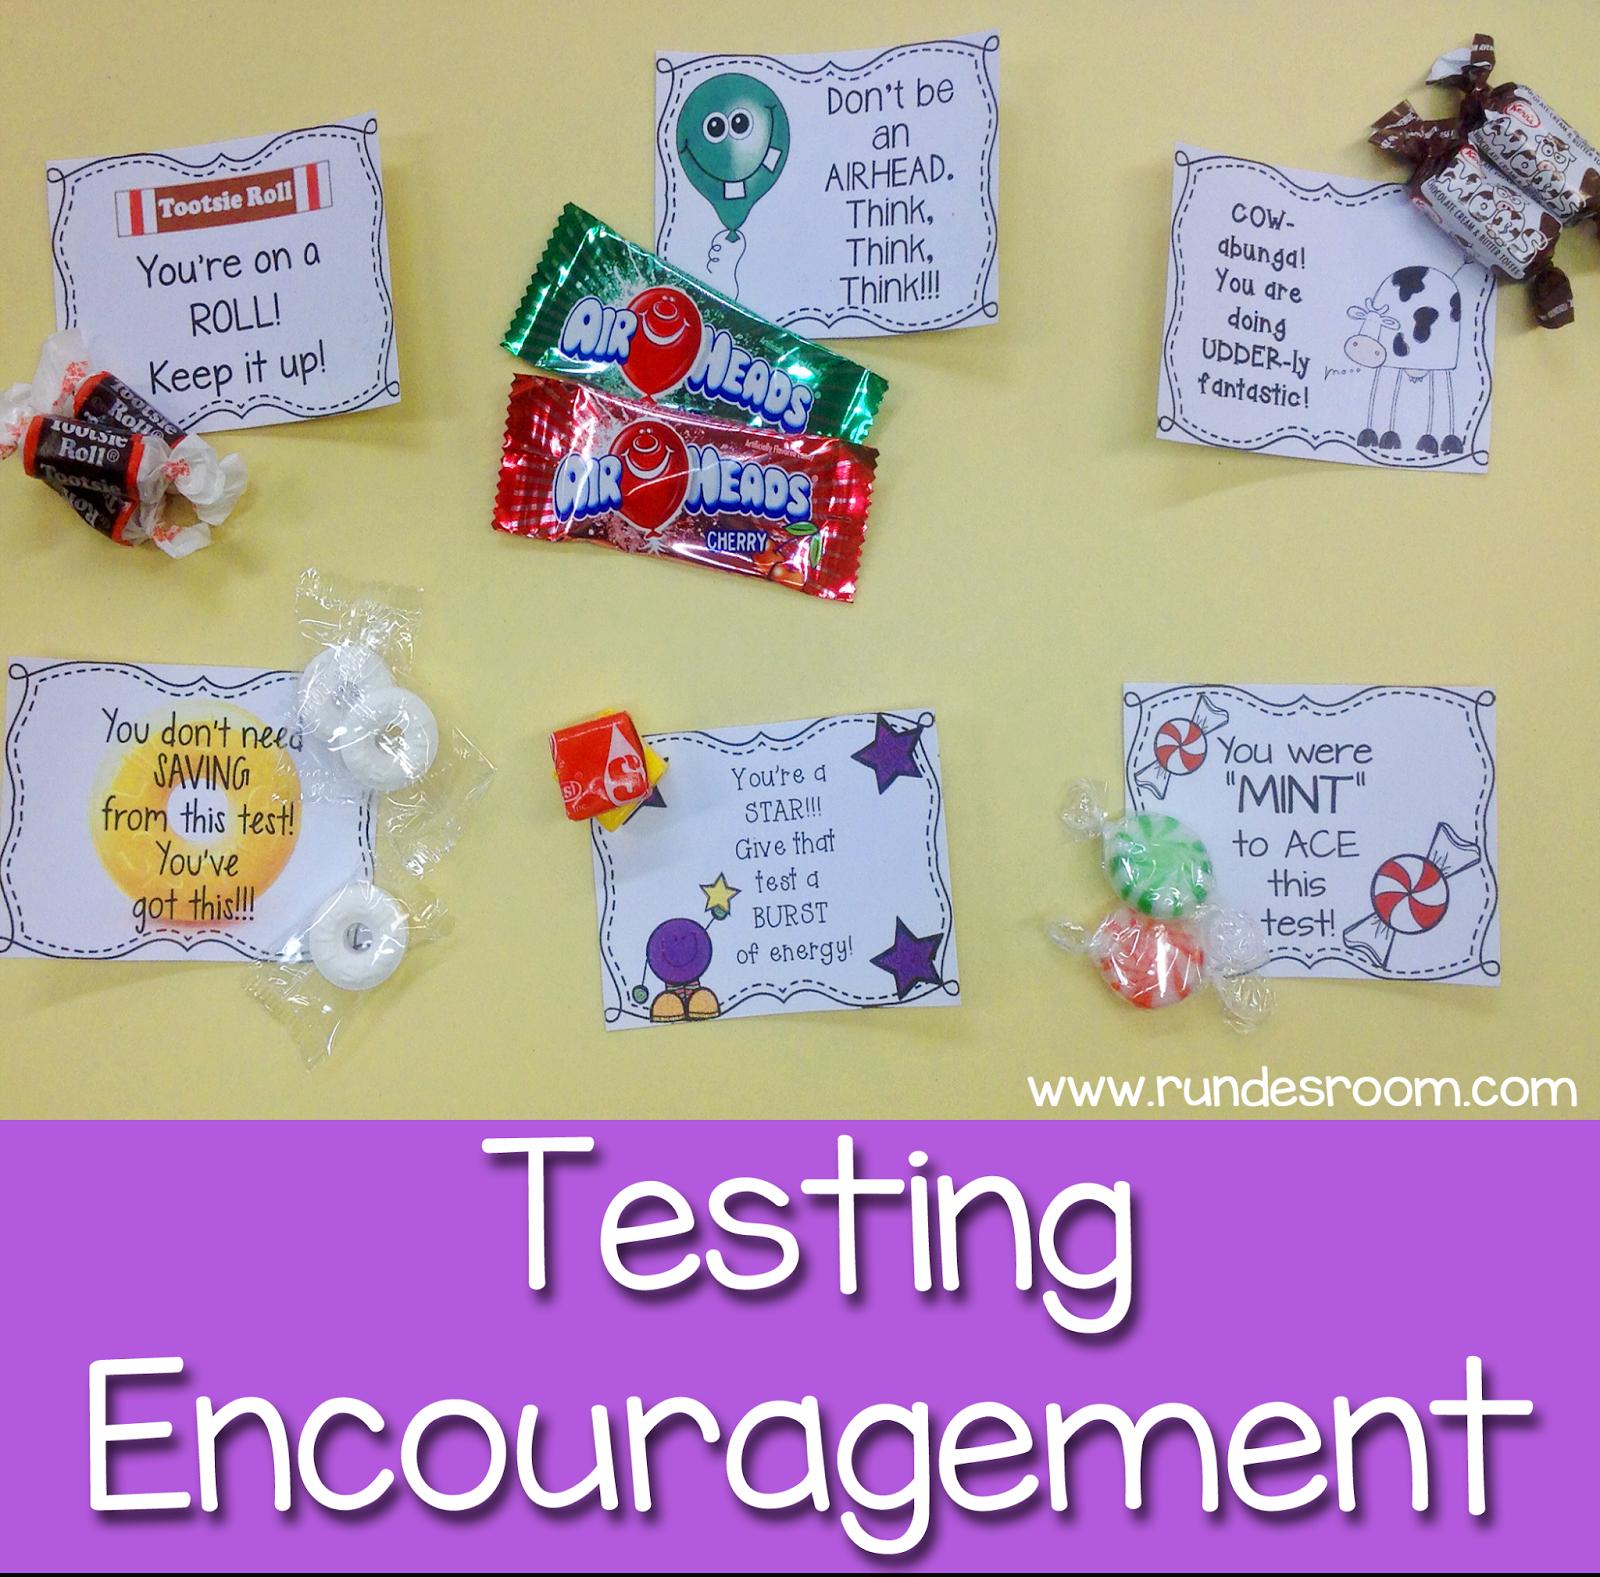 Some Sweet Testing Encouragement   School   Staar Test, Test Anxiety - Free Printable Testing Signs